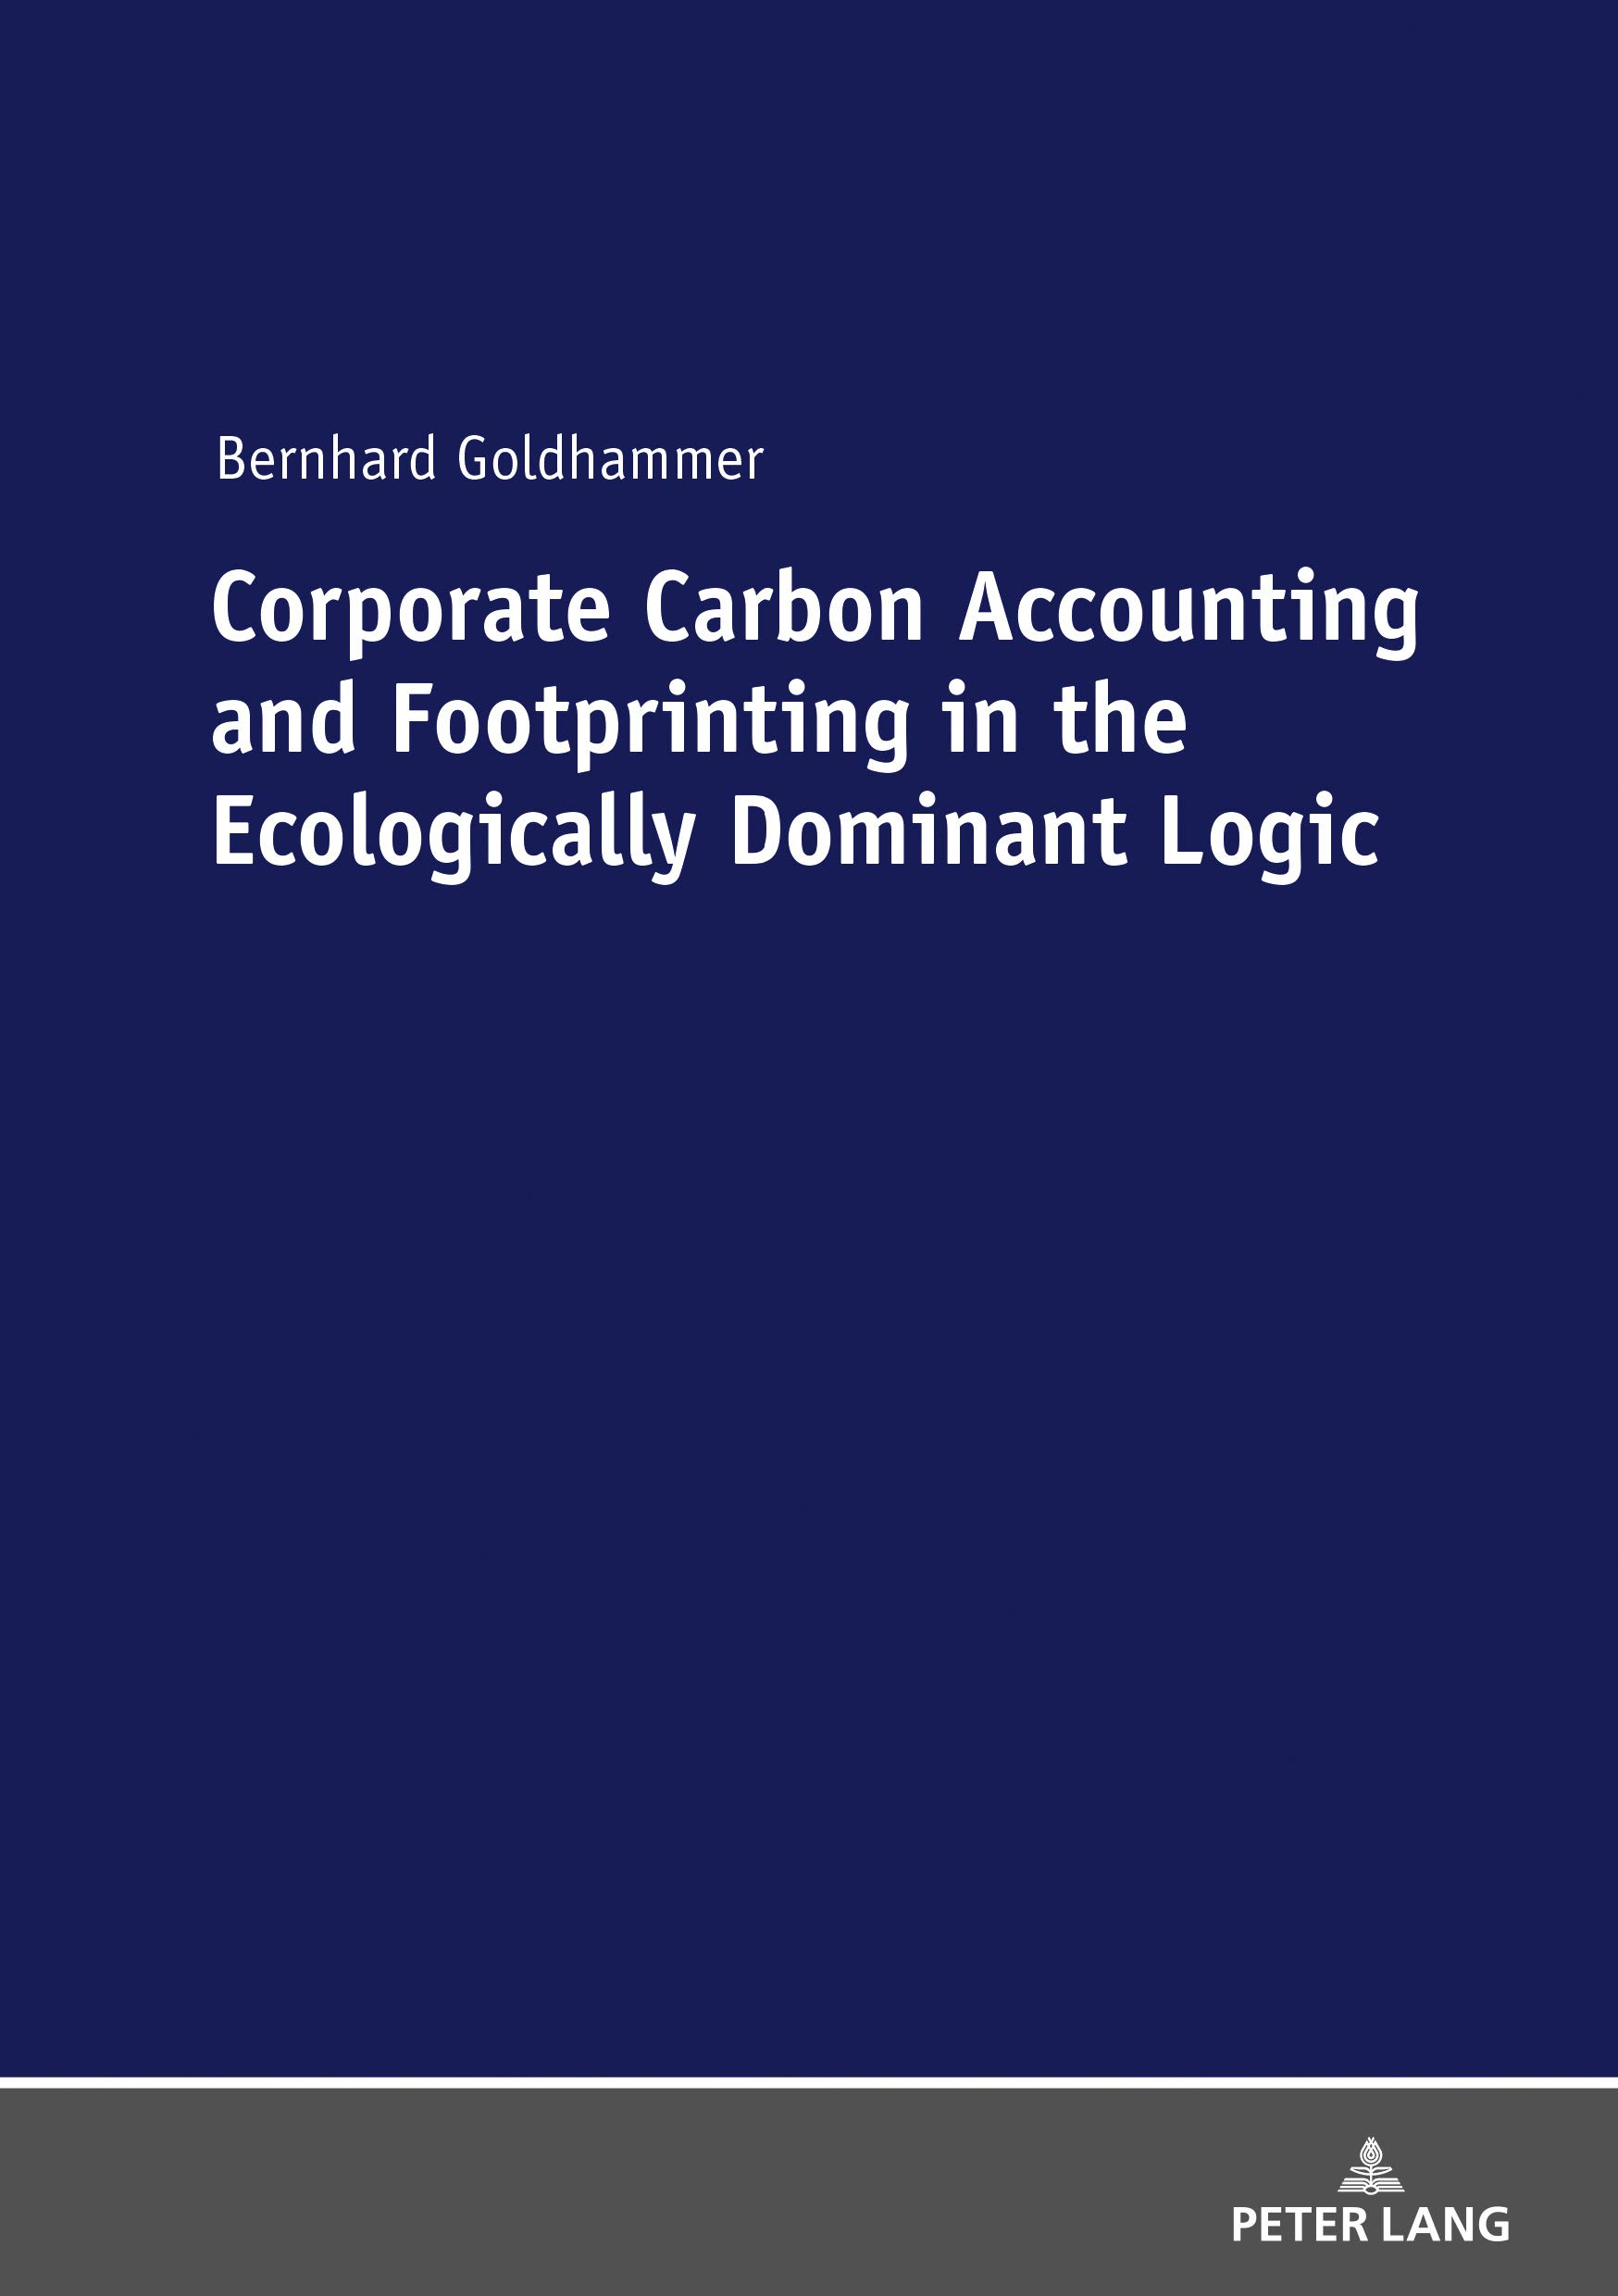 Corporate Carbon Accounting and Footprinting in the Ecologically Dominant Logic: With an Excursion on the Detection of Outliers in a double-logarithmic Regression Model